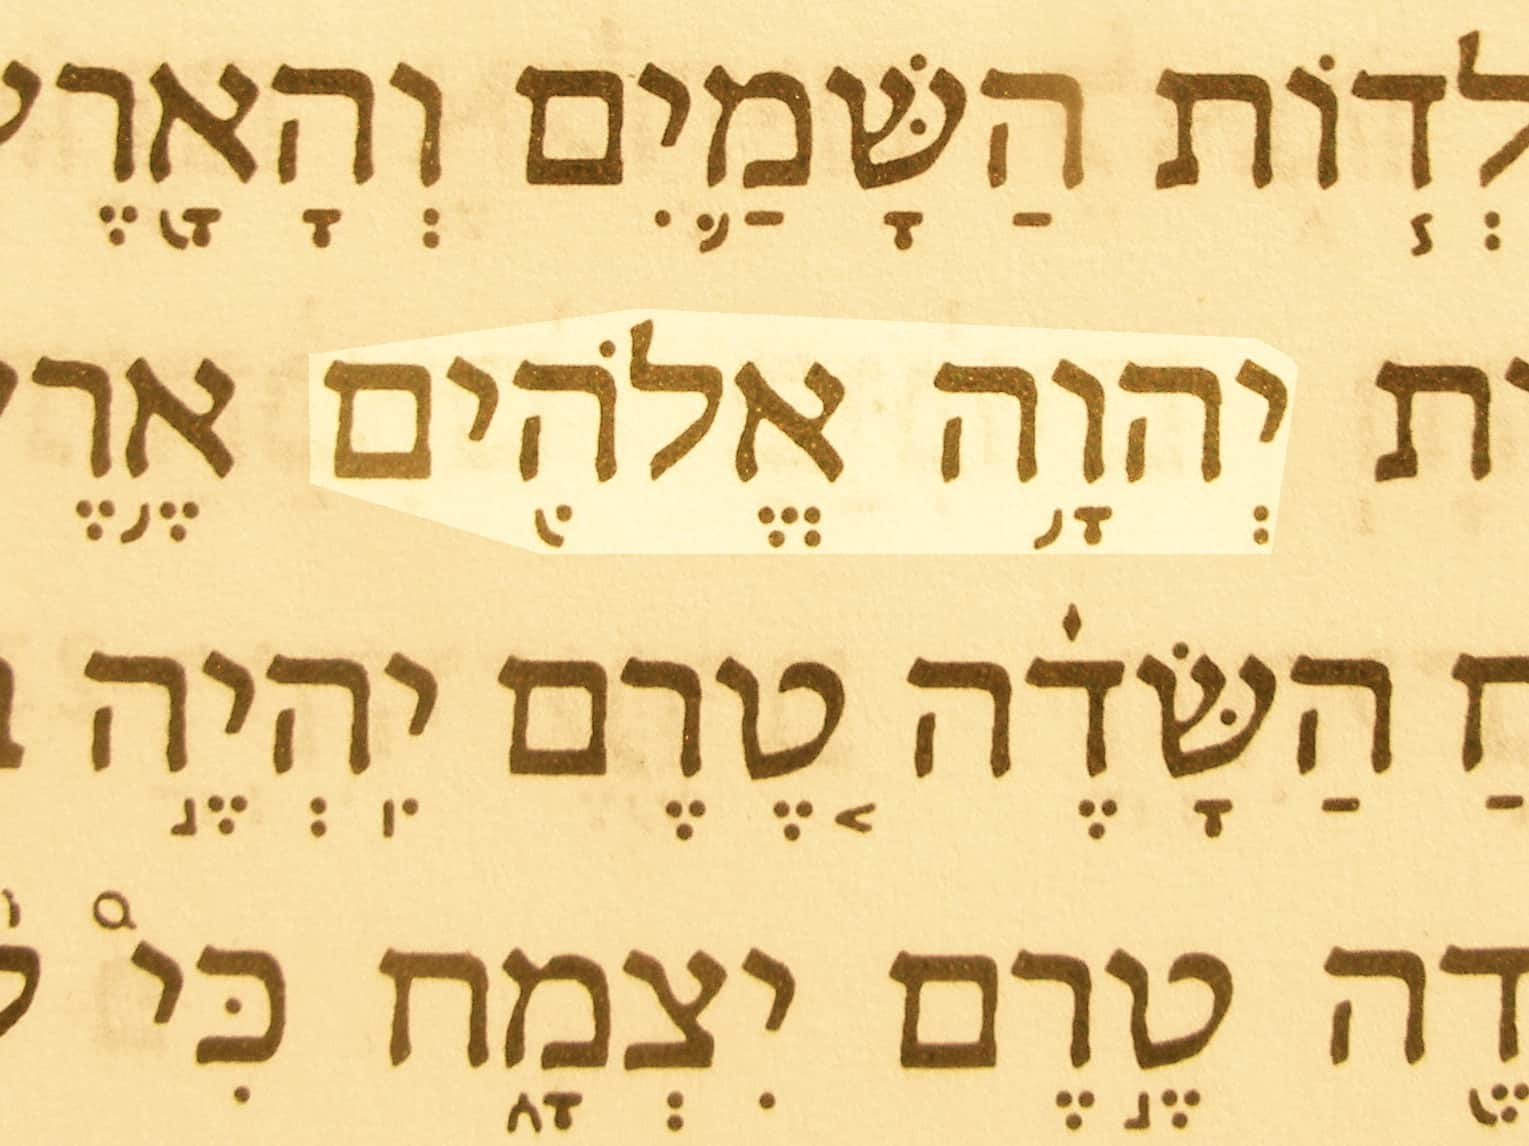 Lord God - All the Biblical Names for God